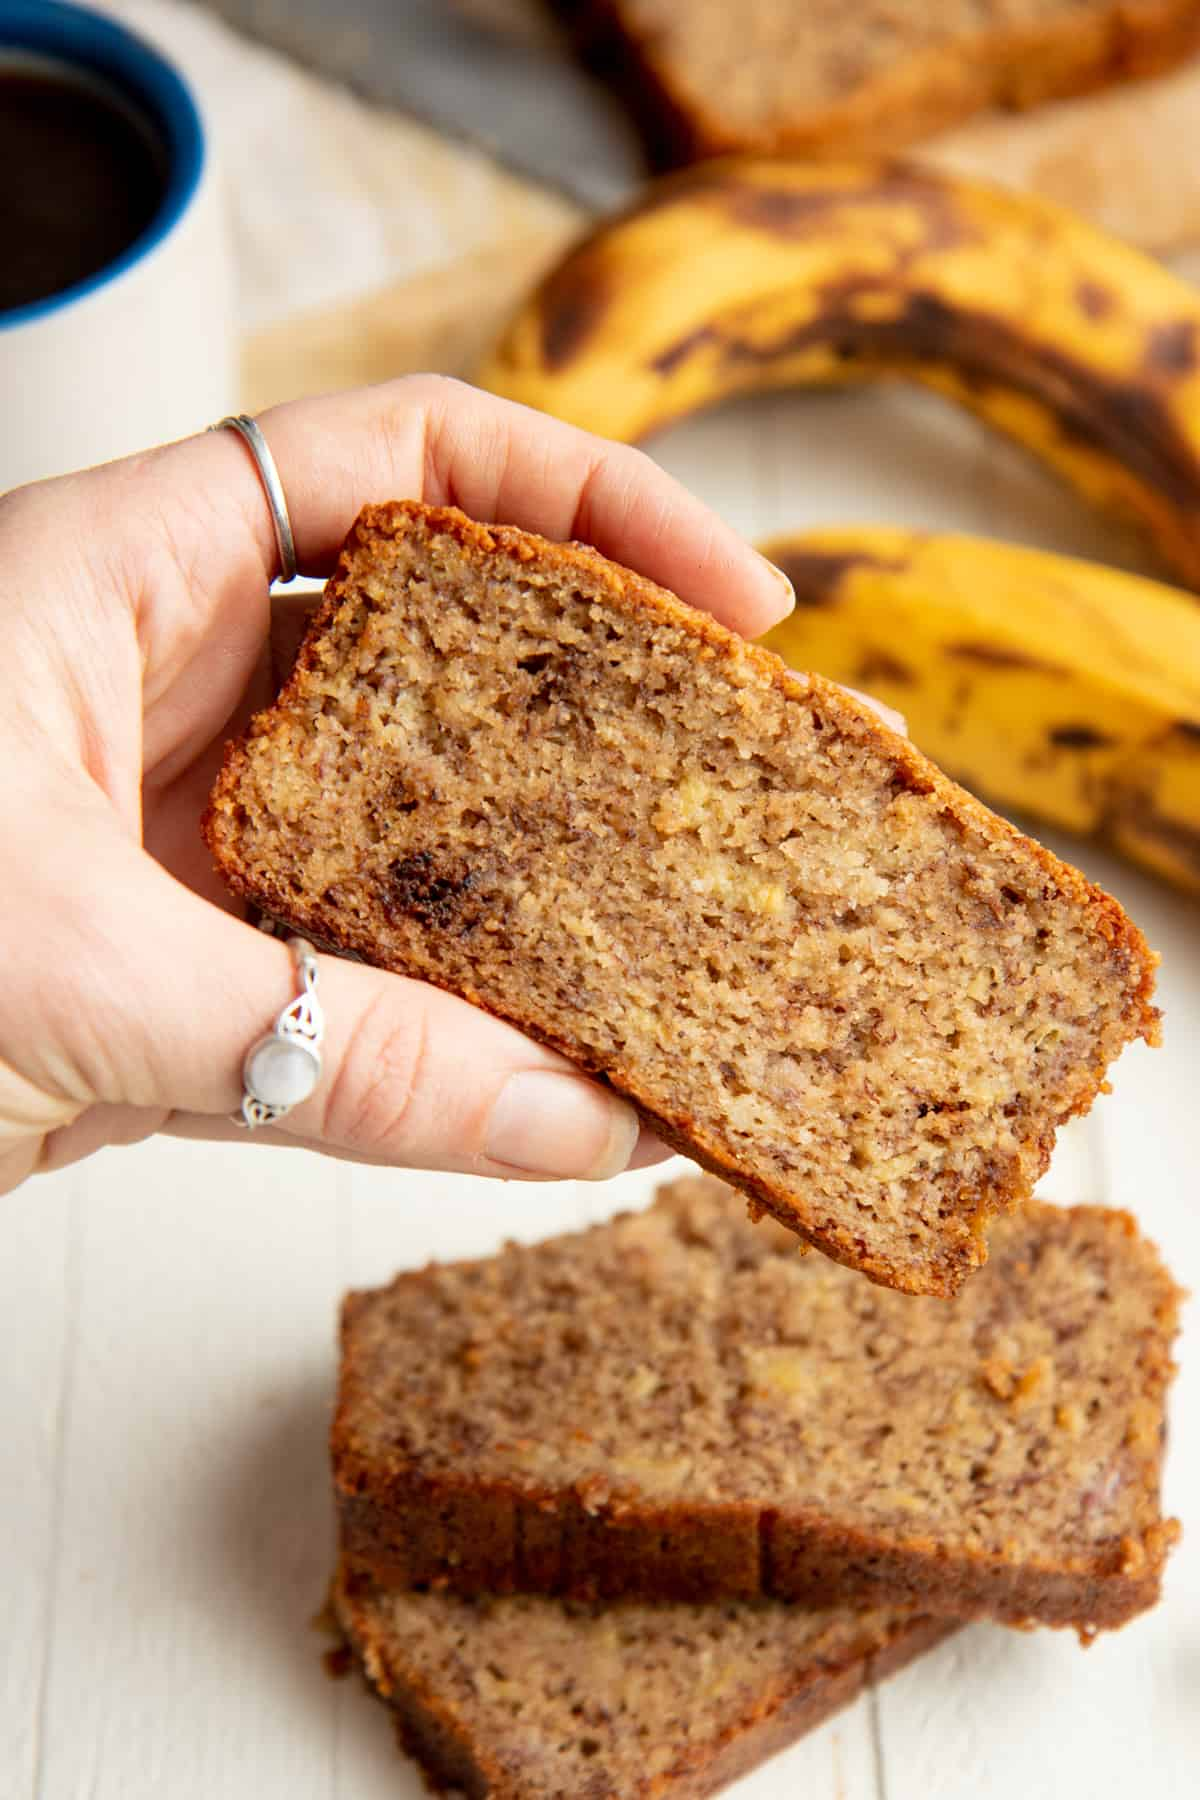 A woman's hand holds a slice of almond flour banana bread over a stack of other slices.